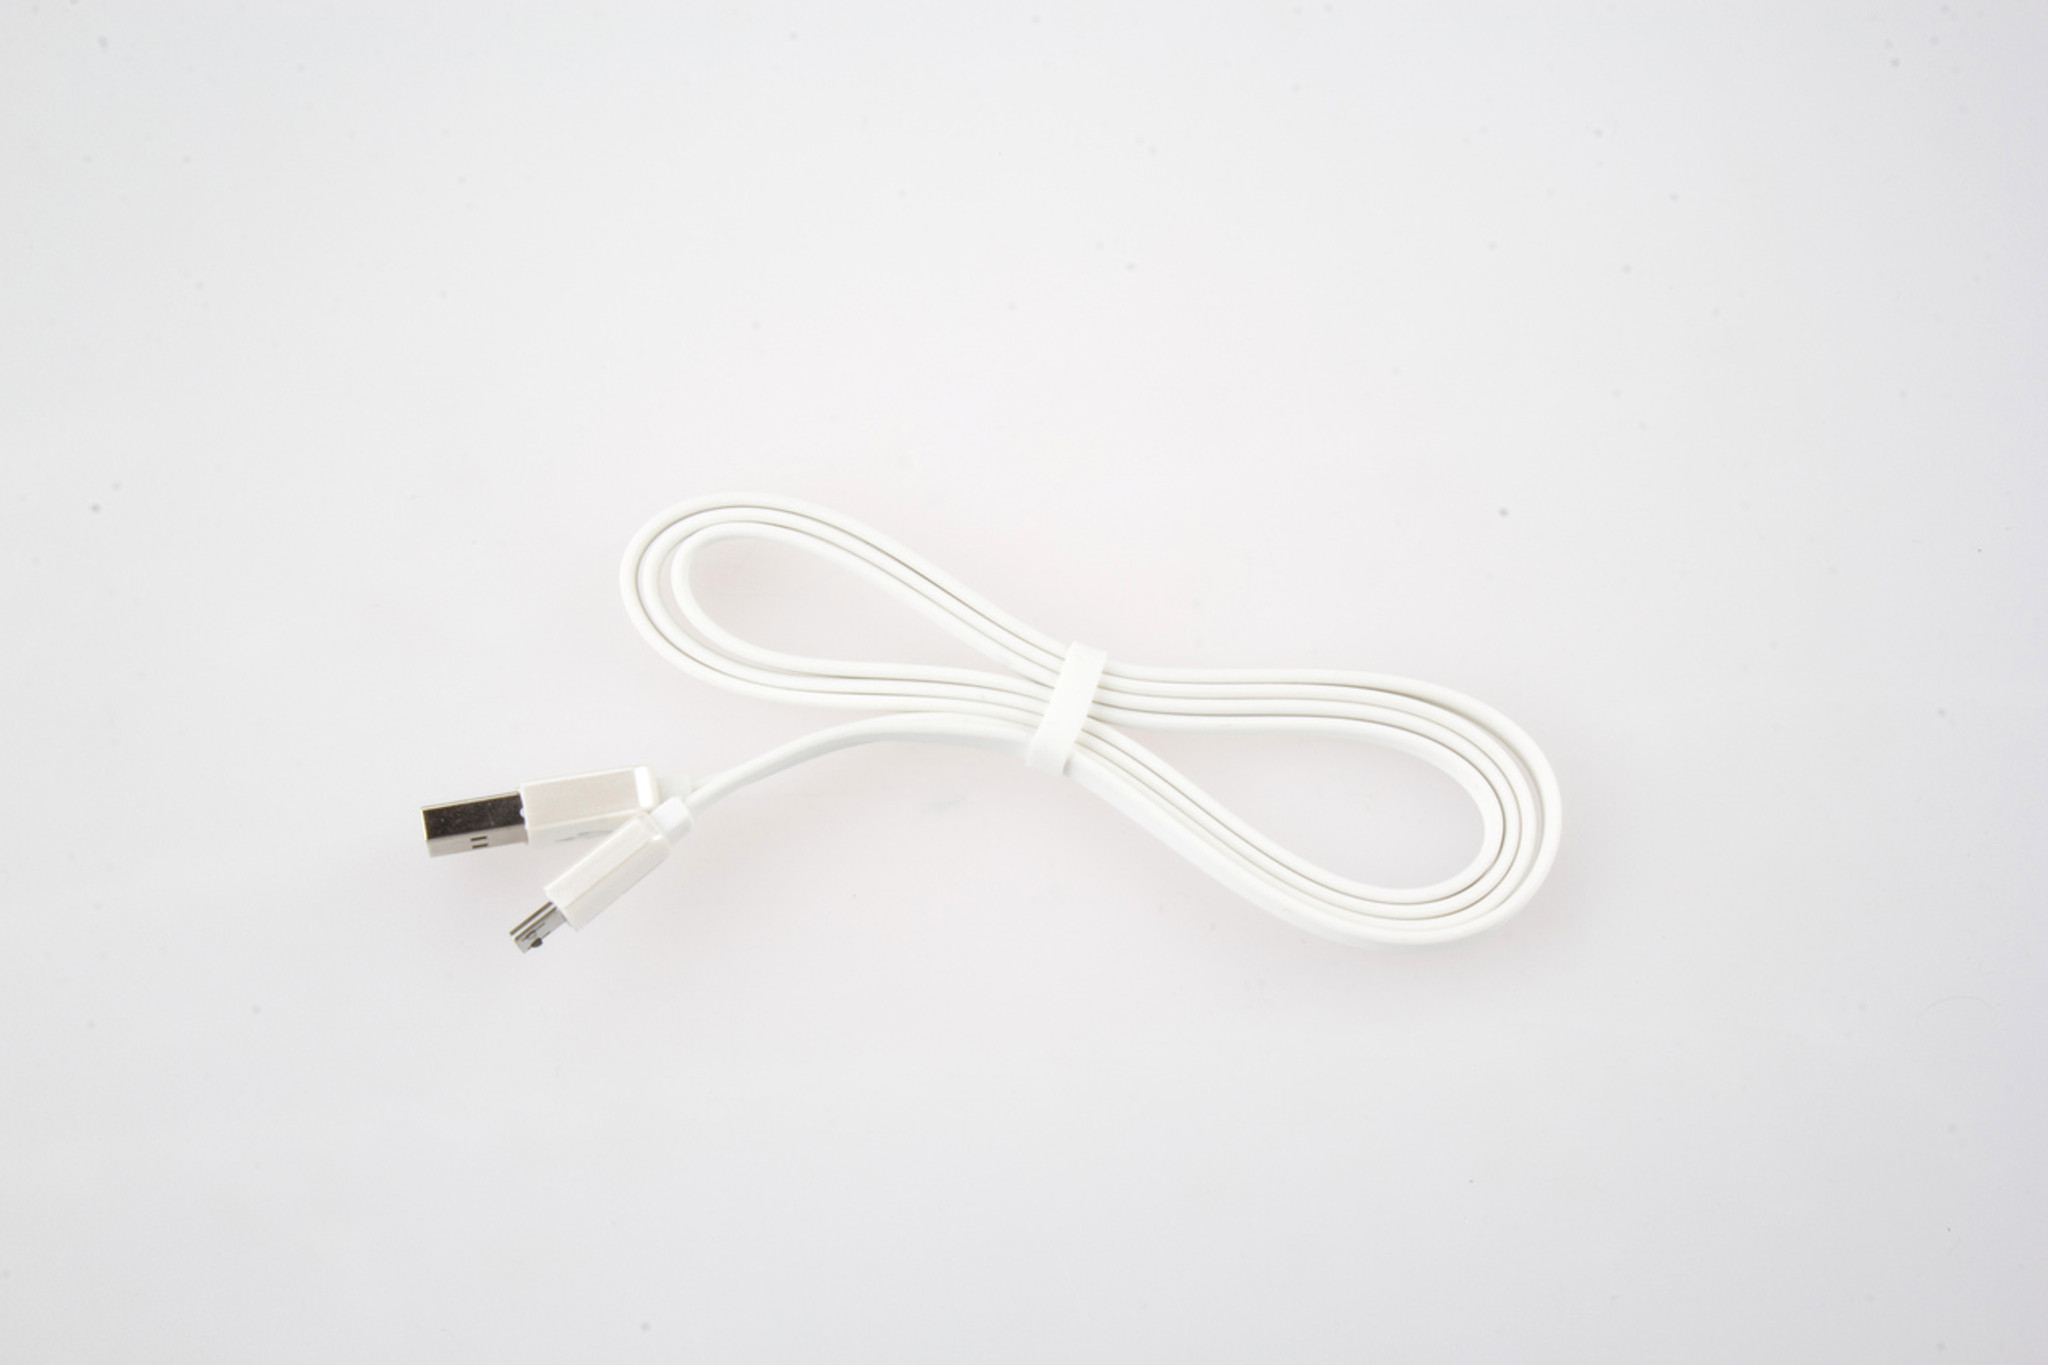 Remax Light Speed Cable For Micro White In Pakistan Puding Usb